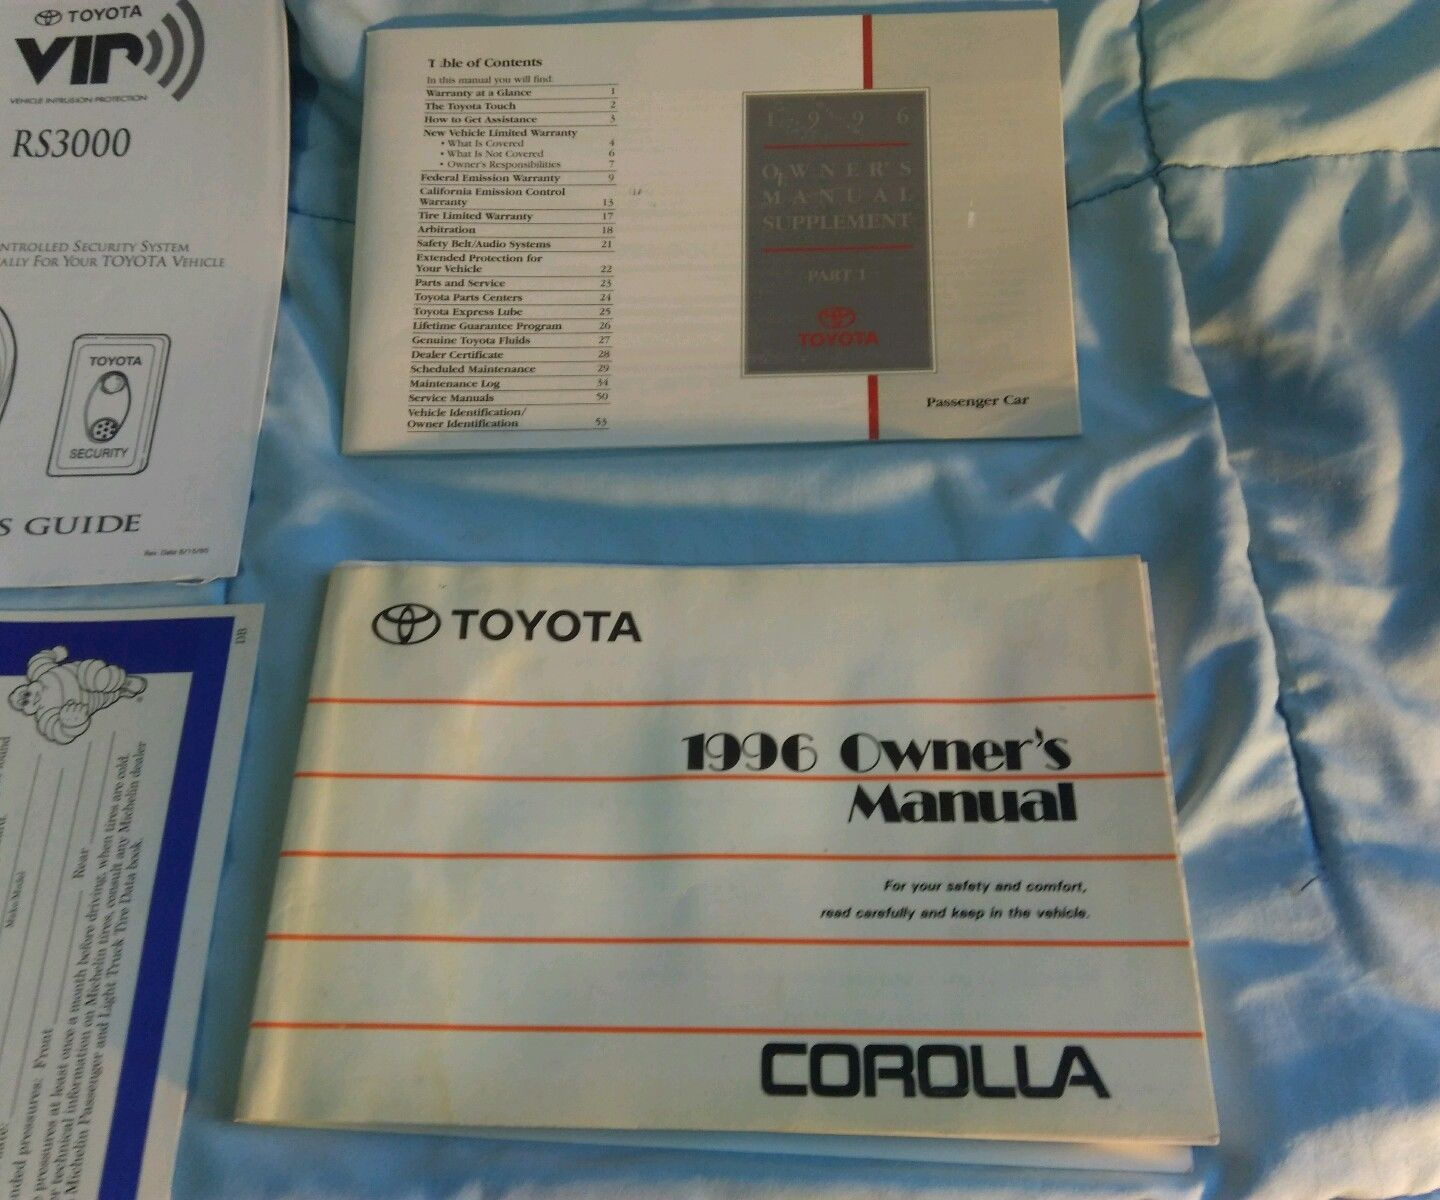 Toyota Corolla Owners Manual: How to scroll